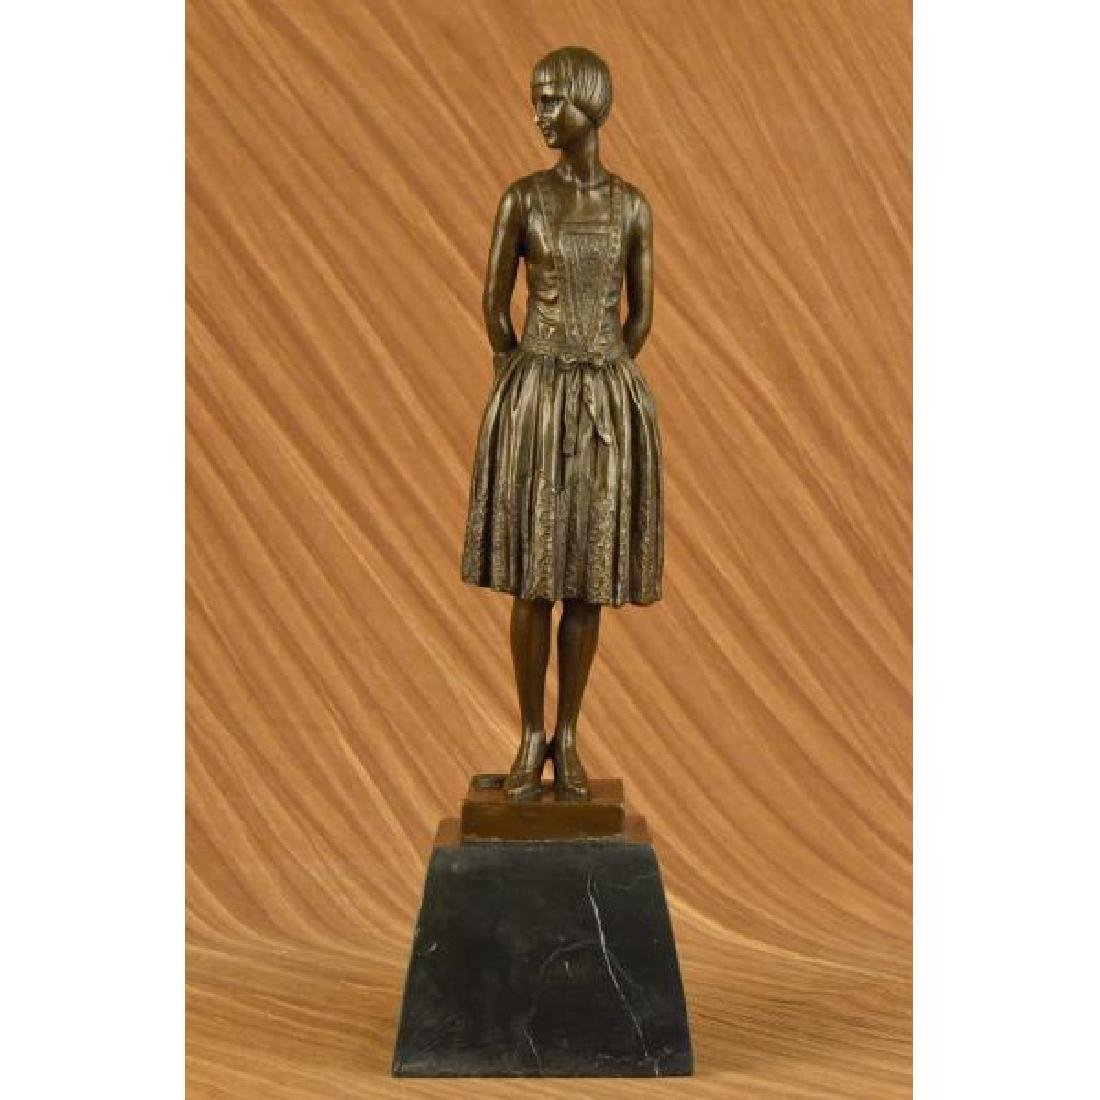 Mom Housewife Bronze Sculpture Marble Base Statue Home